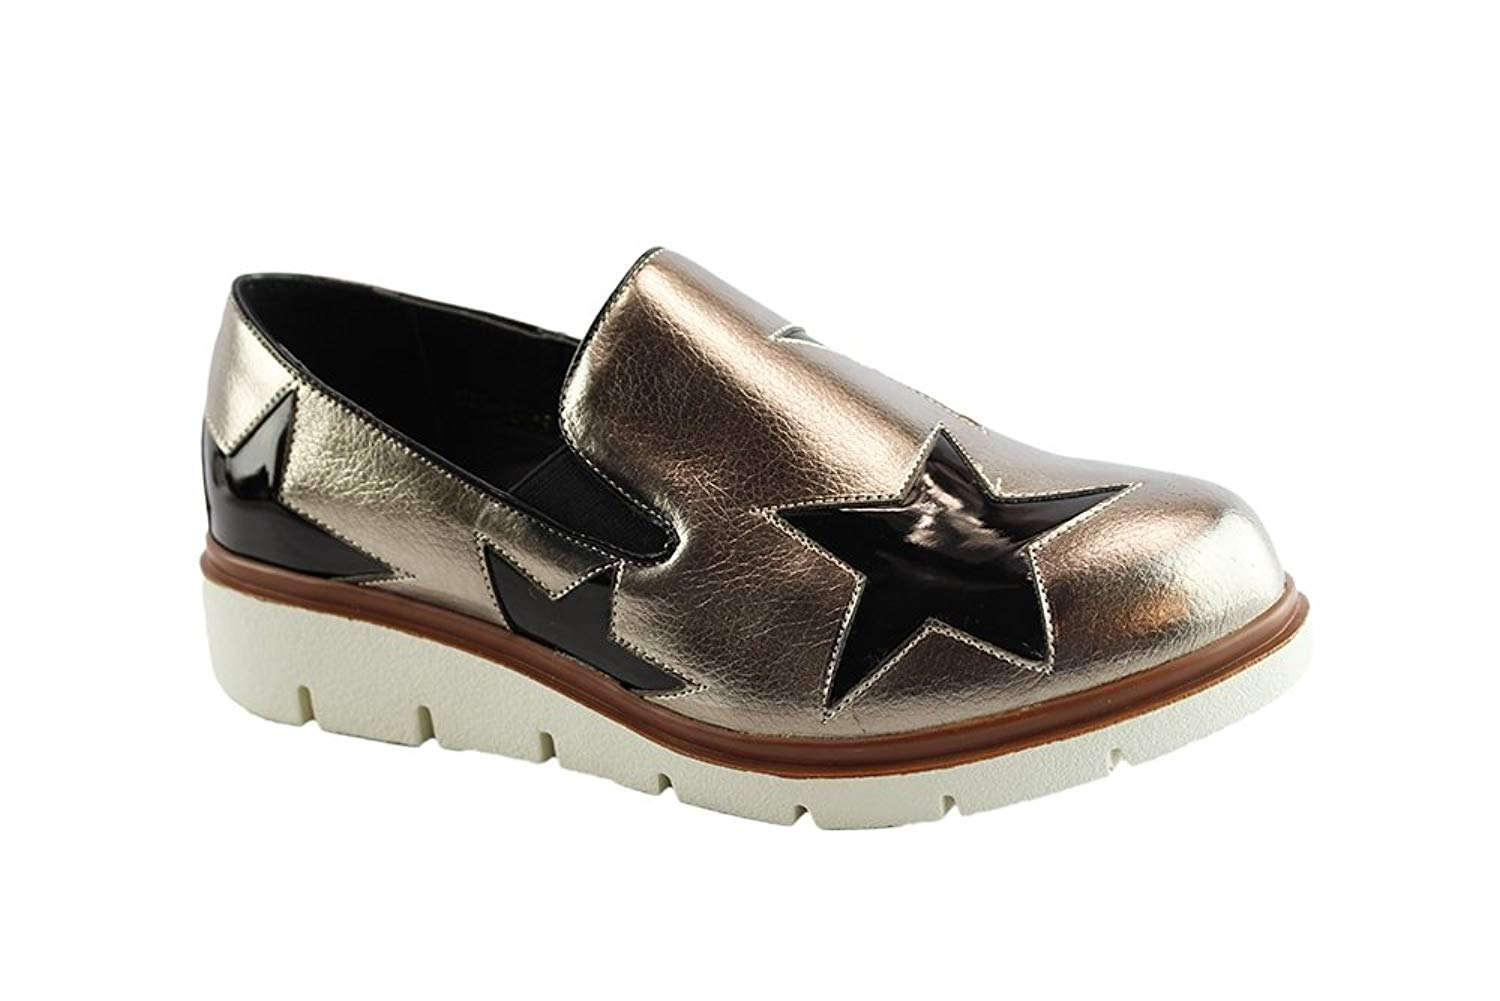 4bd575d347 Get Quotations · Liyu Women Star Slip on Side-Gusset Casual Loafer Shoes/Walking  Shoes